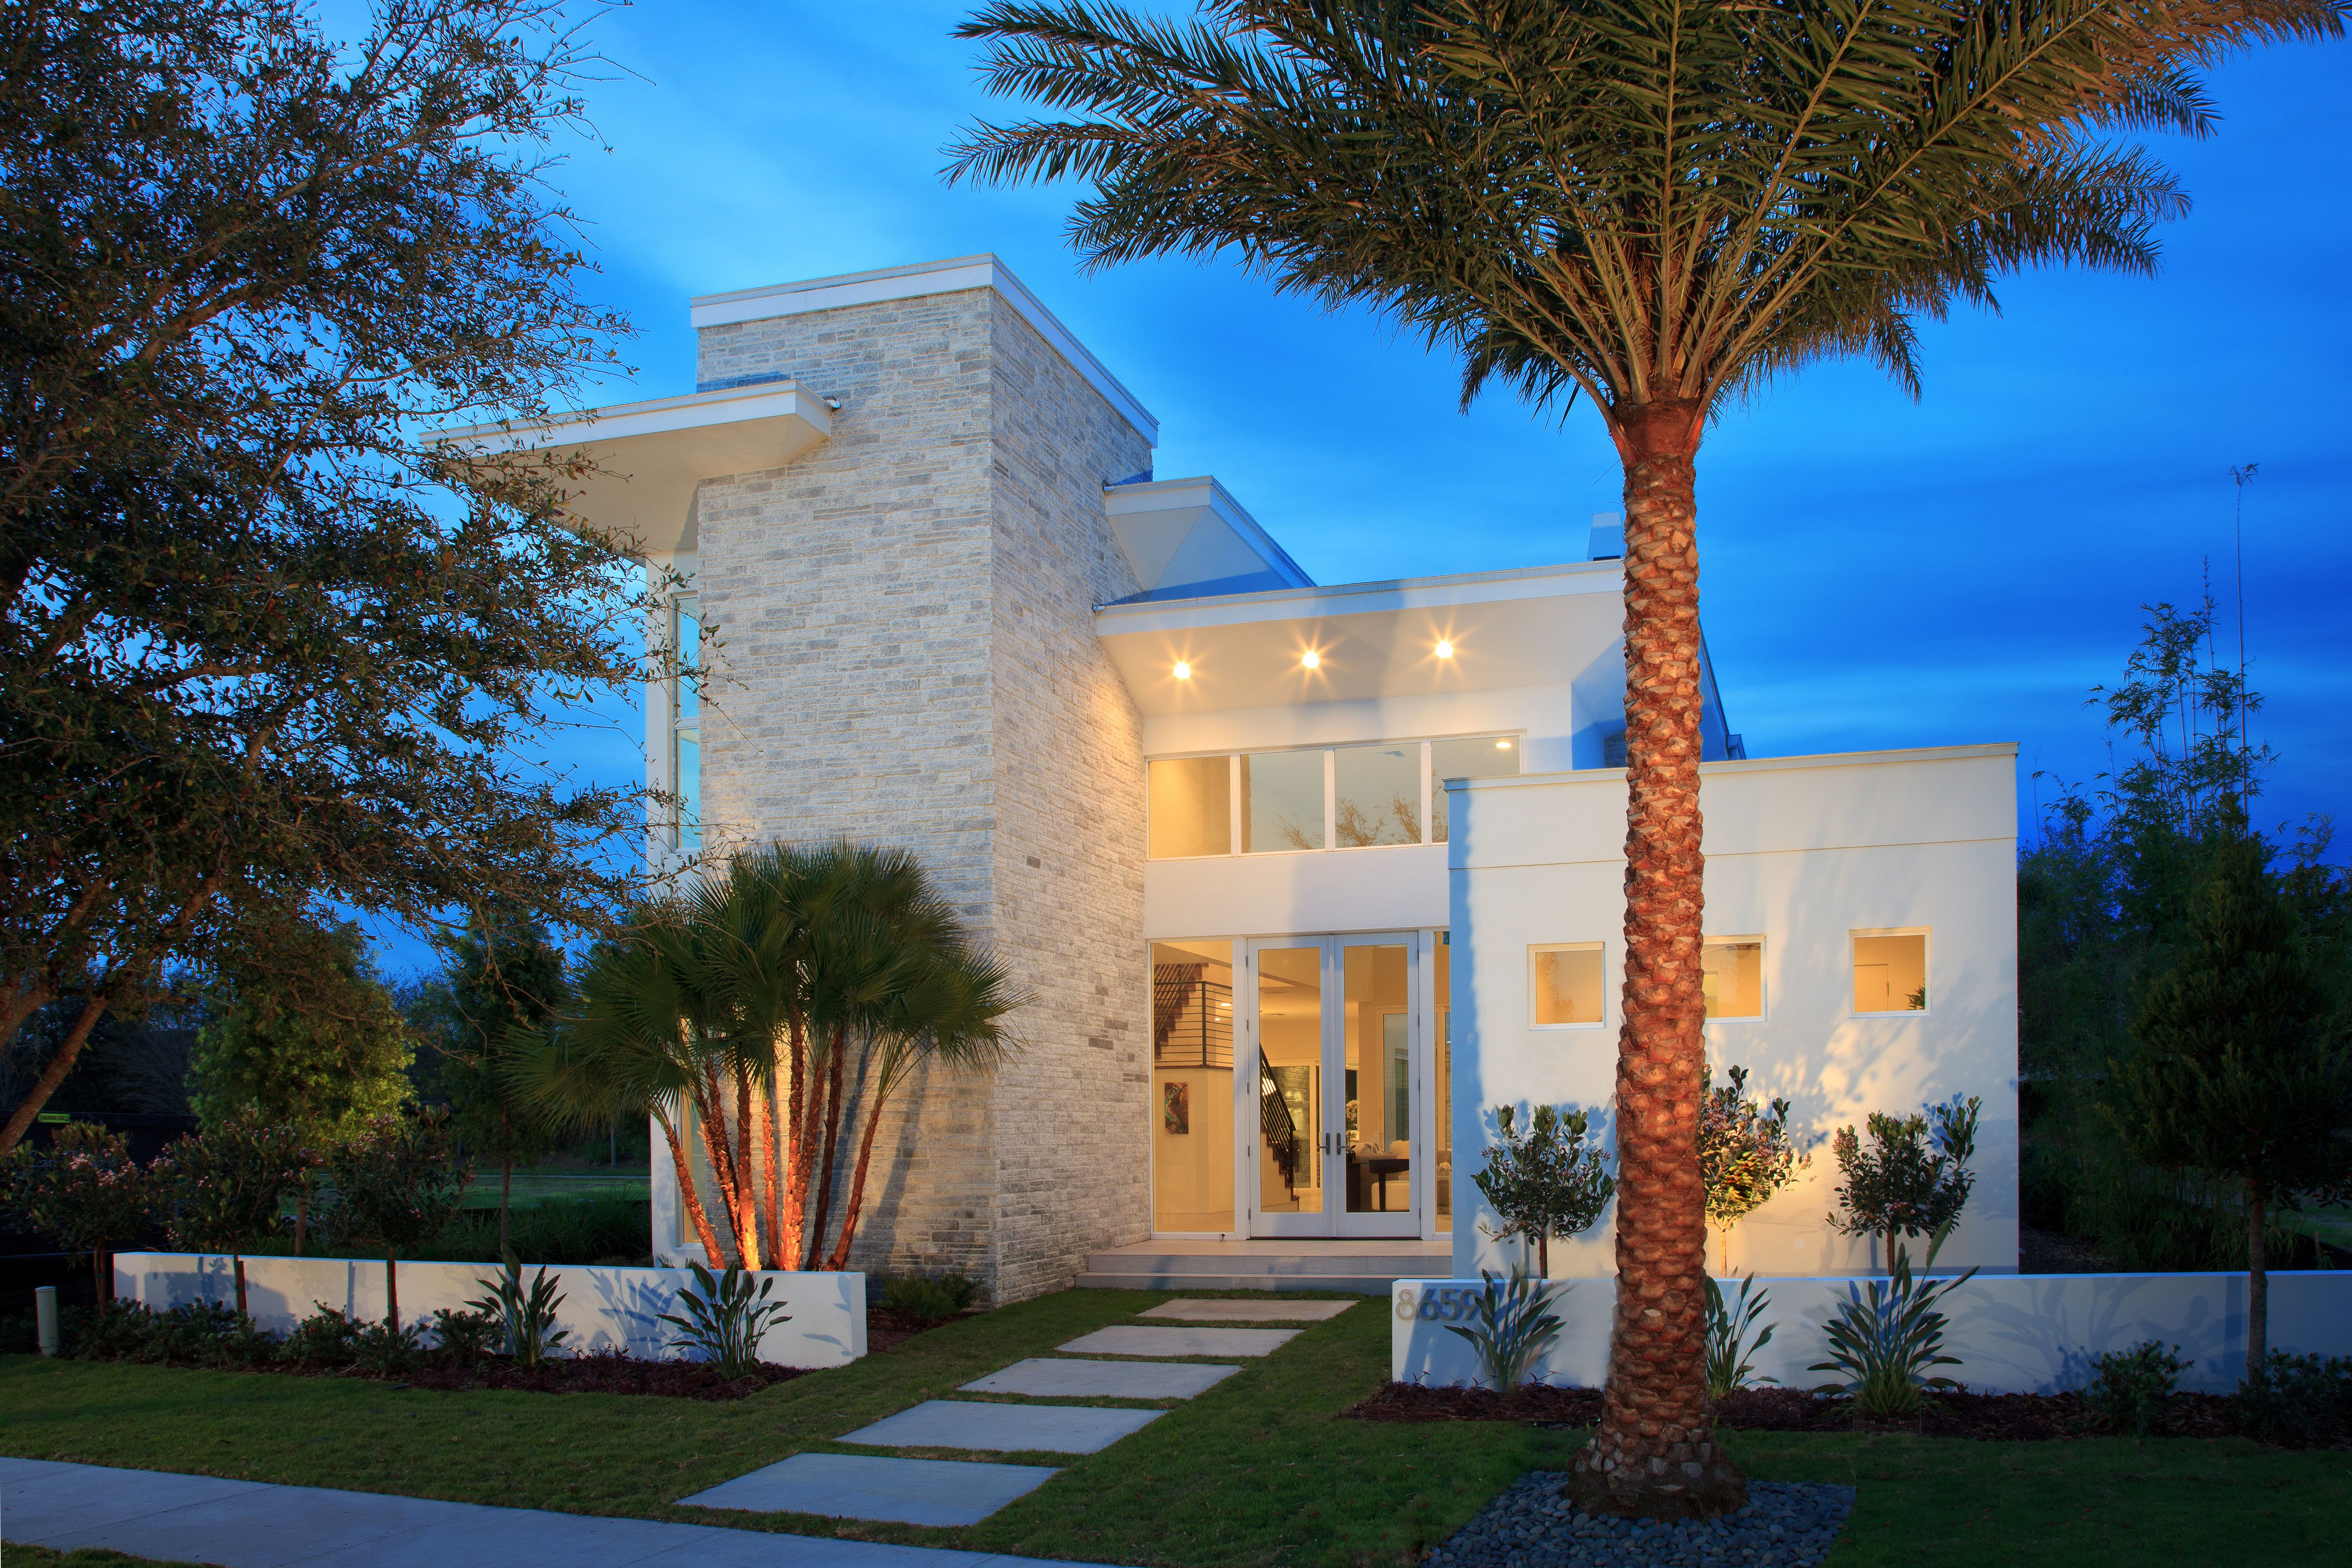 Design F by WayCool Homes designed by Phil Kean located at Lake